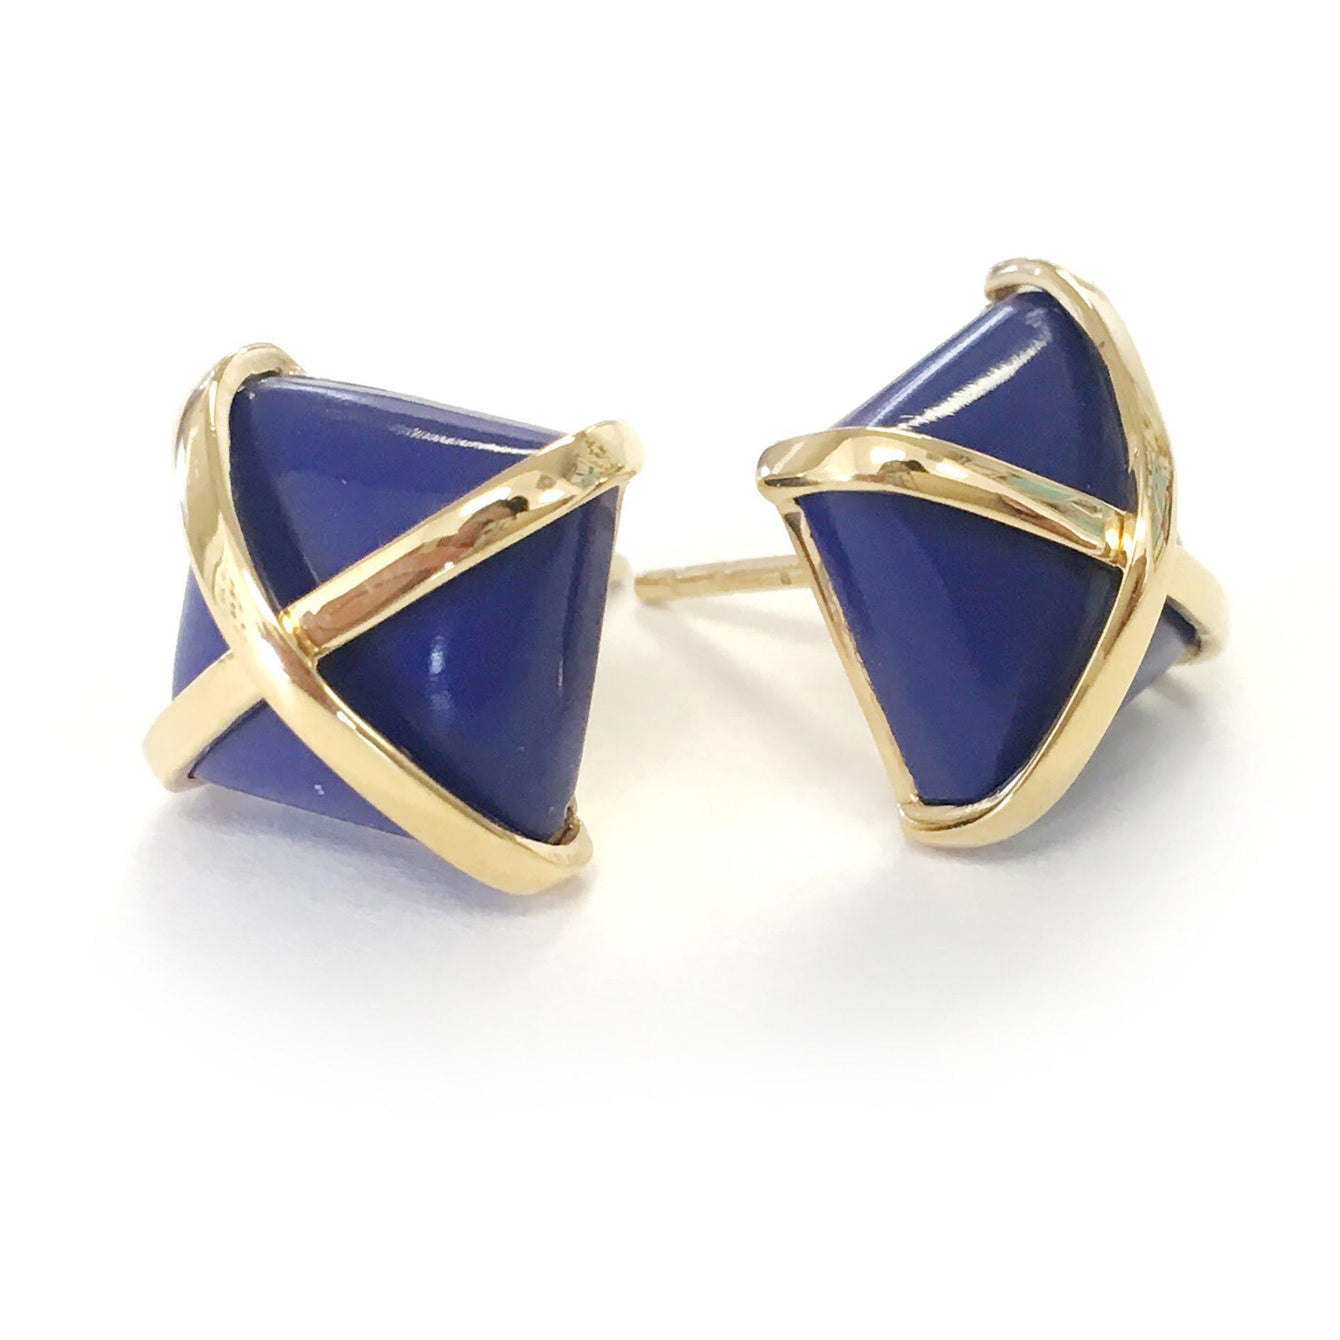 Martin 24k Gold Gemstone Criss Cross Studs-Women - Jewelry - Earrings-ADDISON WEEKS-Lapis-Peccadilly